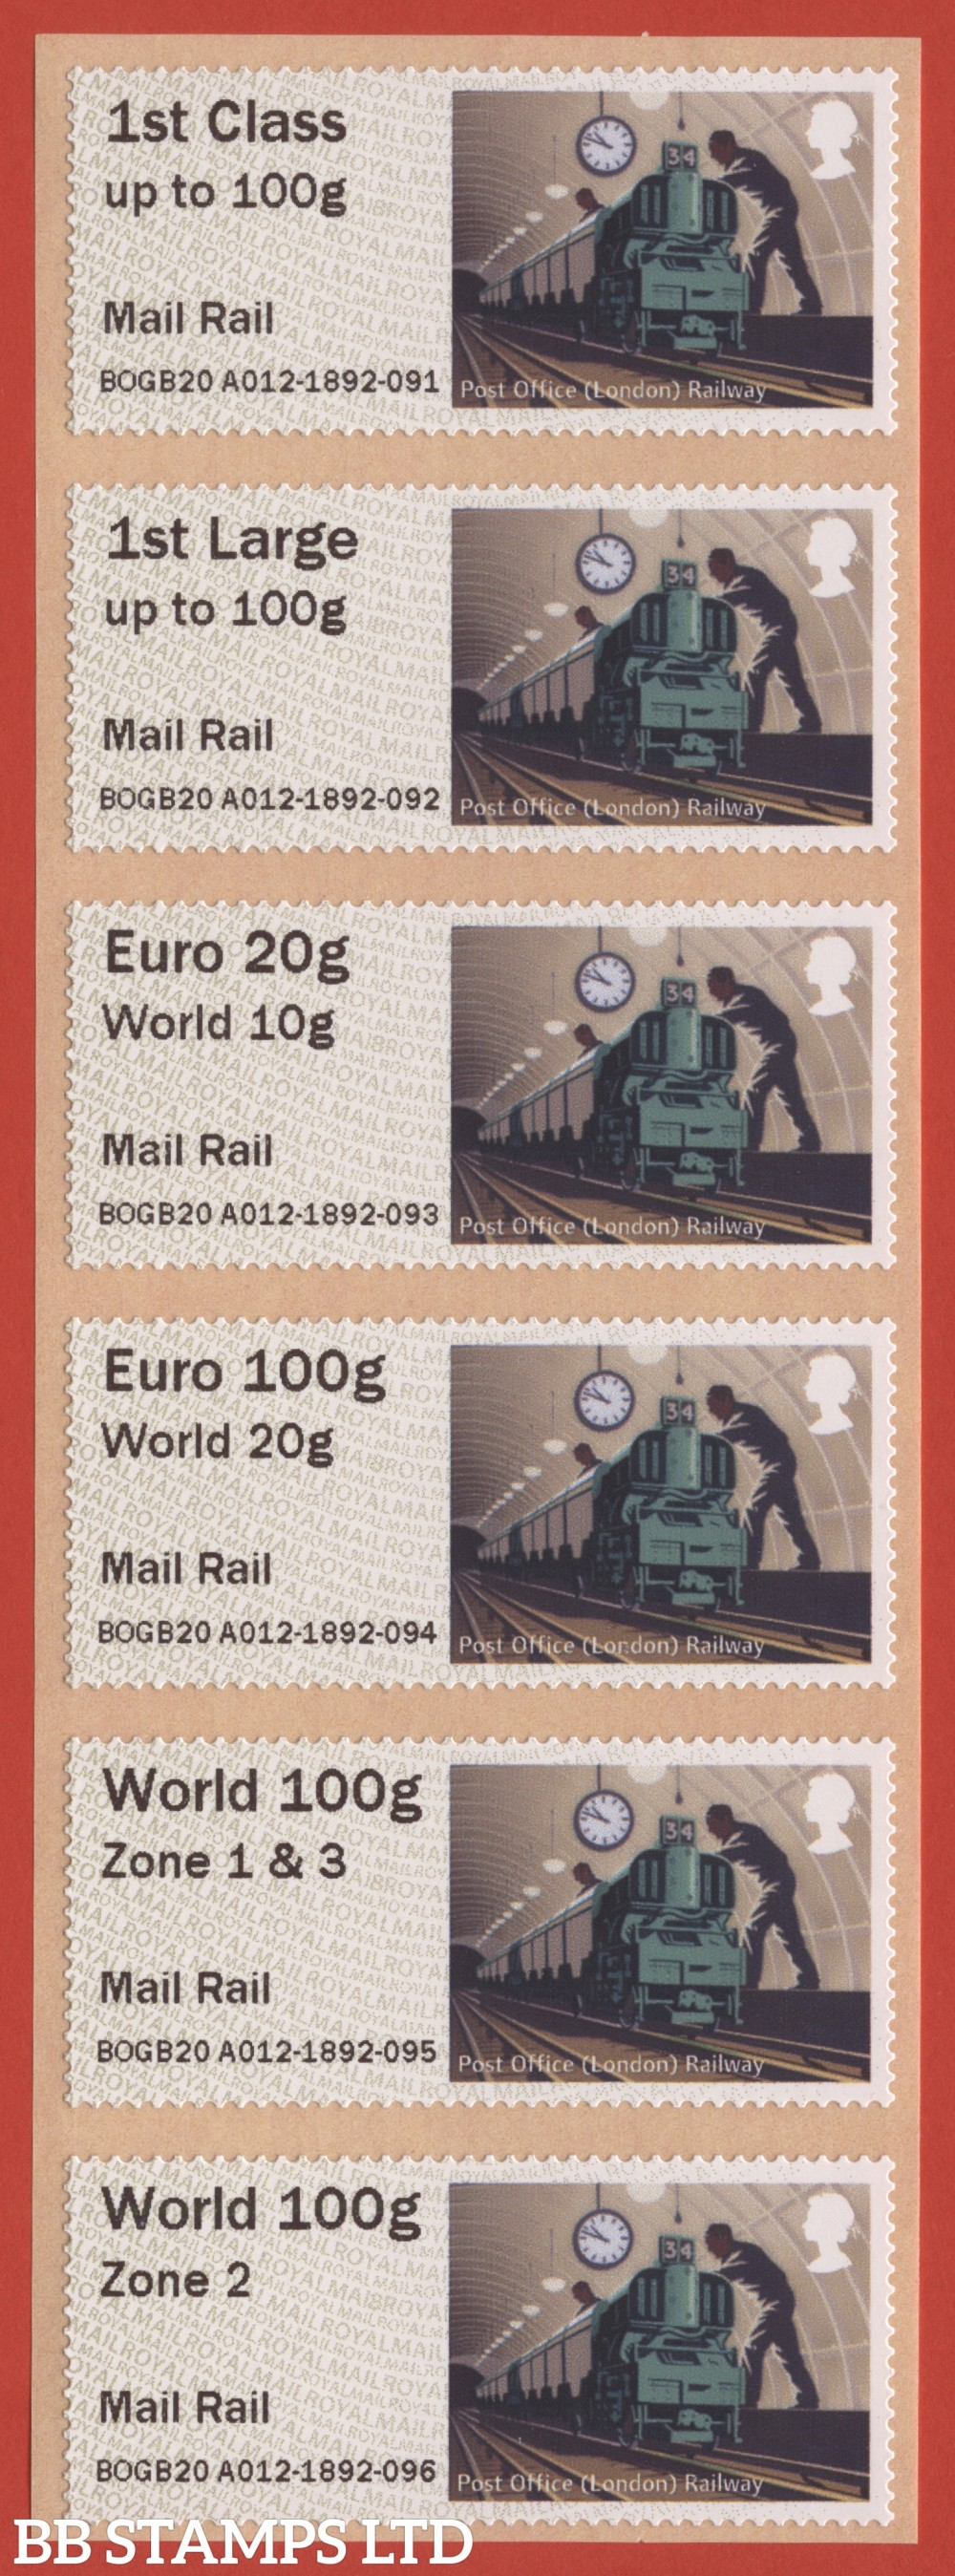 Underground Rail: Mail Rail, set of 6 (TIIIA) with new overseas stamps: 1st/1stL/Euro 20g World 10g, and 3 new values: Euro 100g World 20g, World 100g Zone 1 & 3 [with &; doesn't exist with hyphen] and World Zone 2: MA18 year code (BK30, P8)